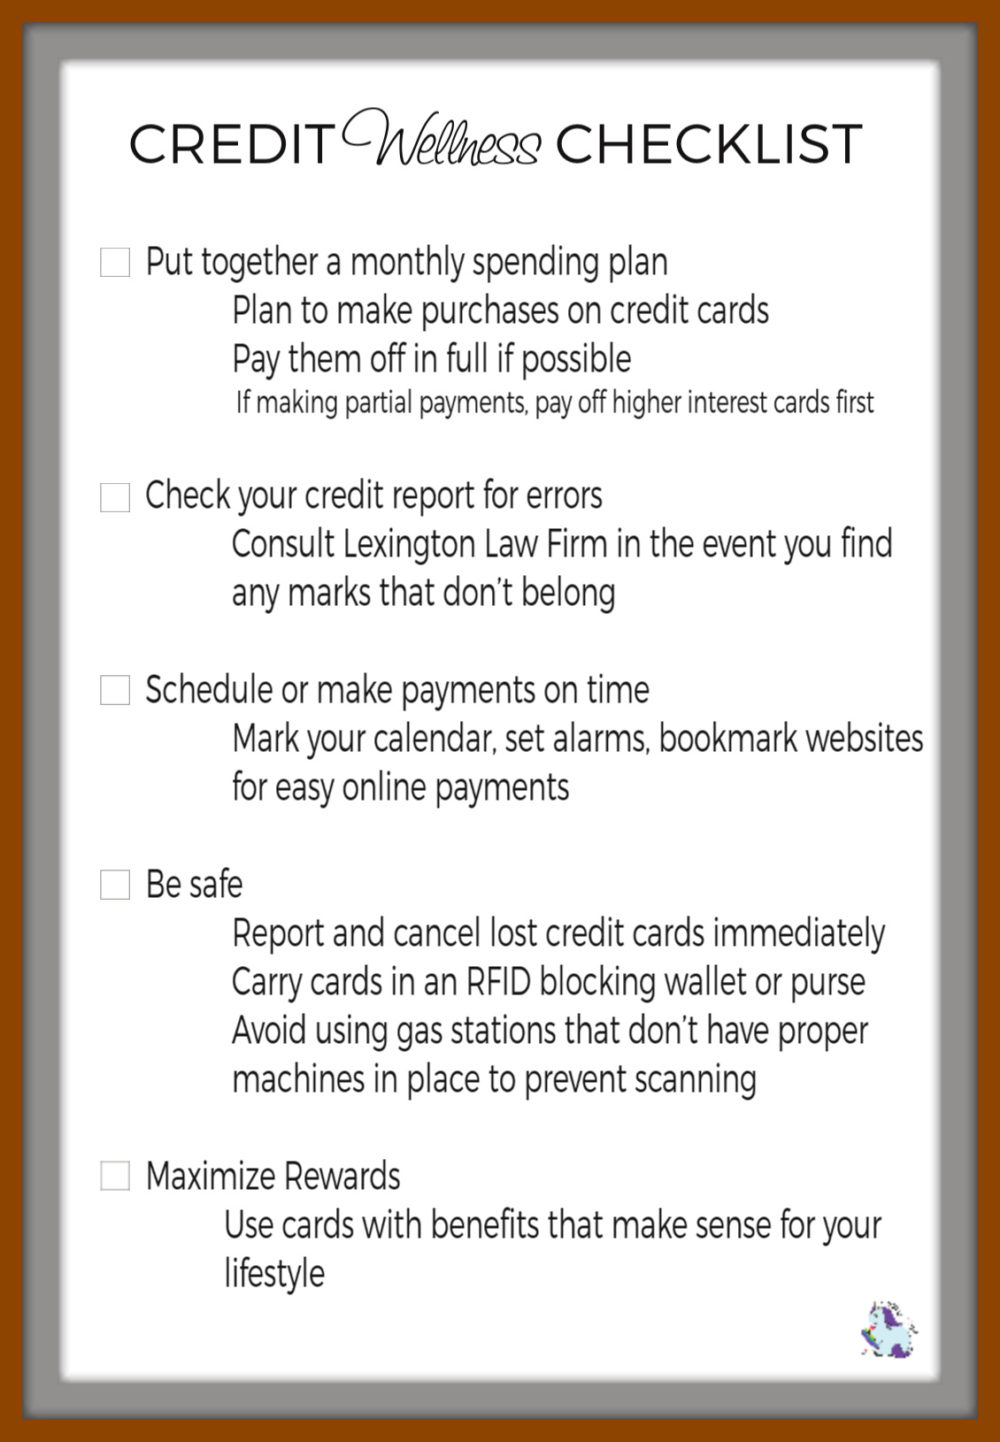 Credit Wellness Checklist - A Must Before the Holiday Shopping Season!